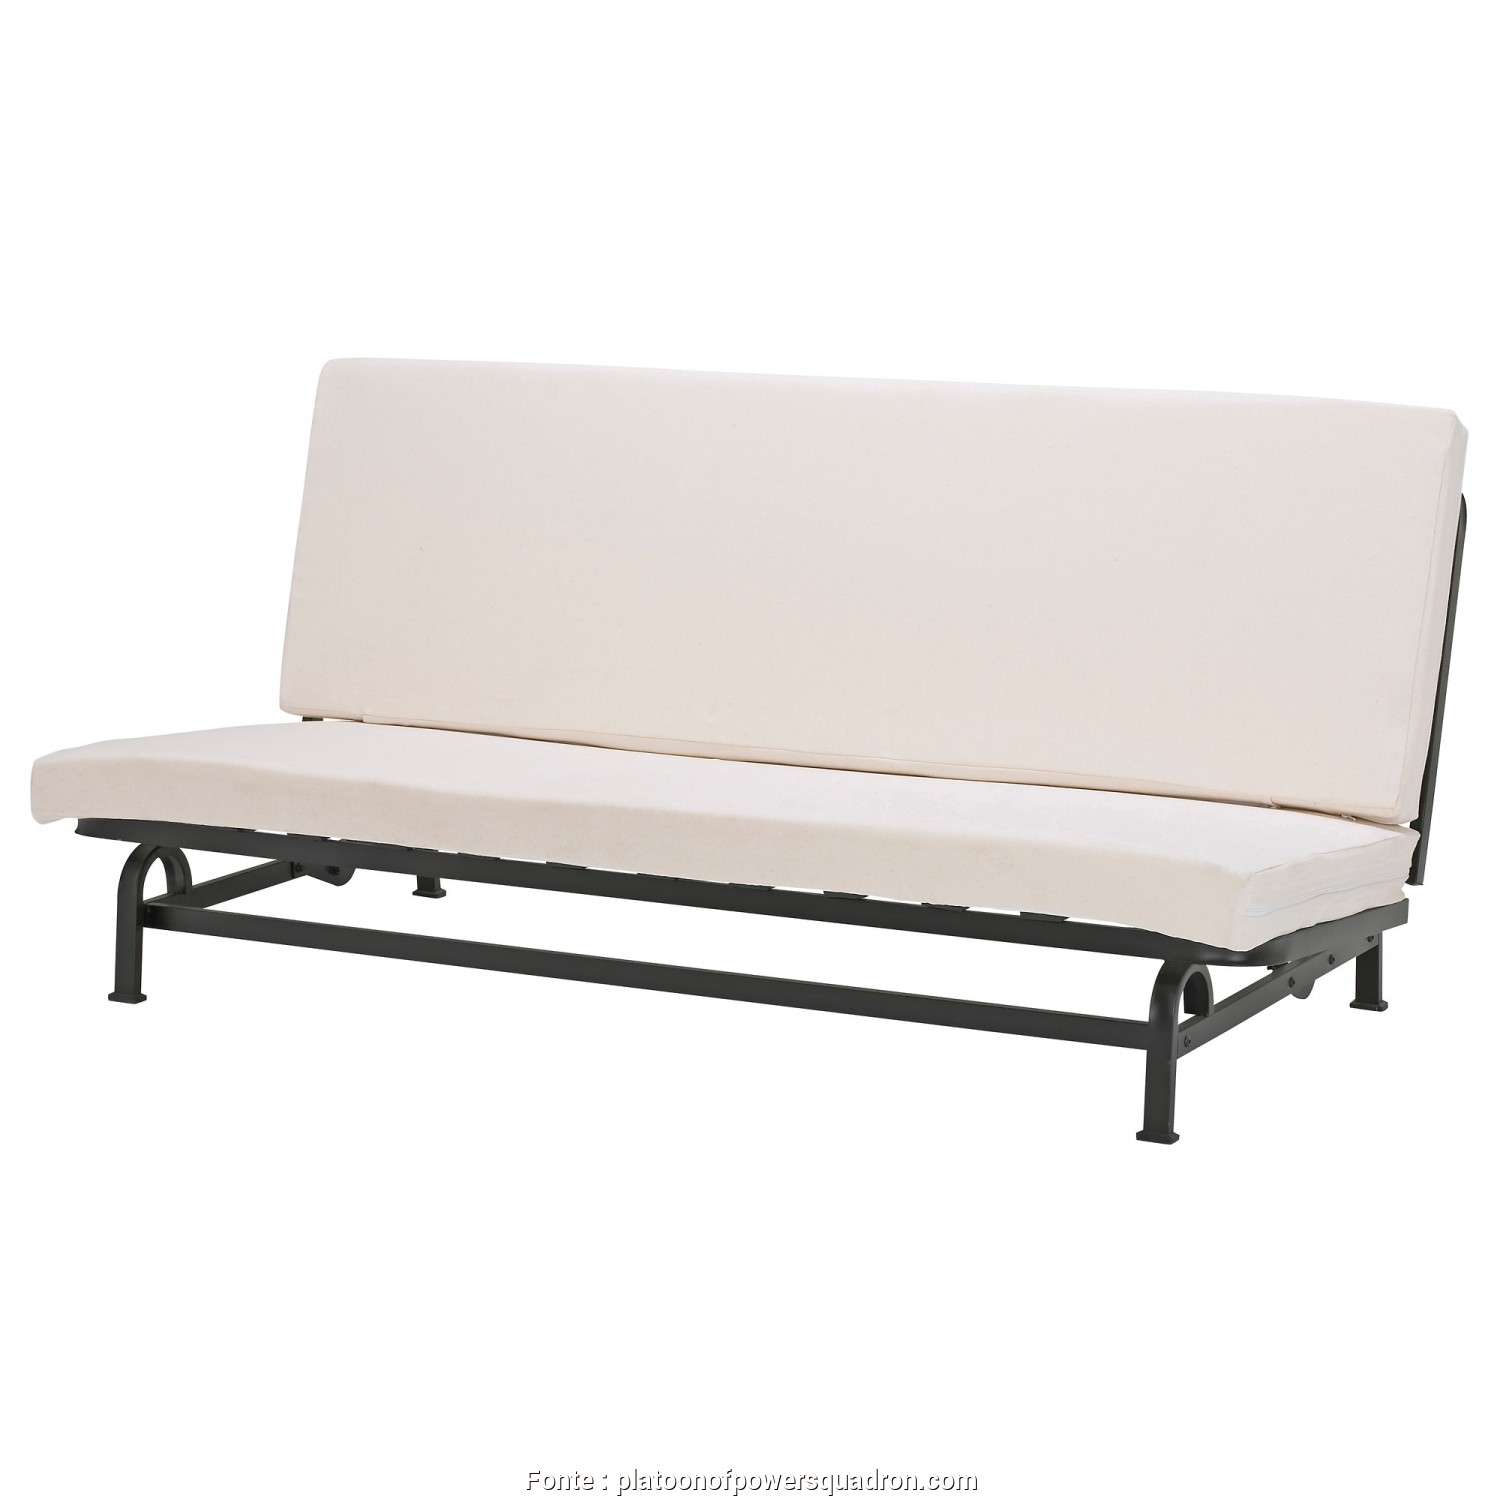 Ikea Beddinge Queen, Fantasia Furniture: Choose Your Best Futons Ikea Style That Suits Your